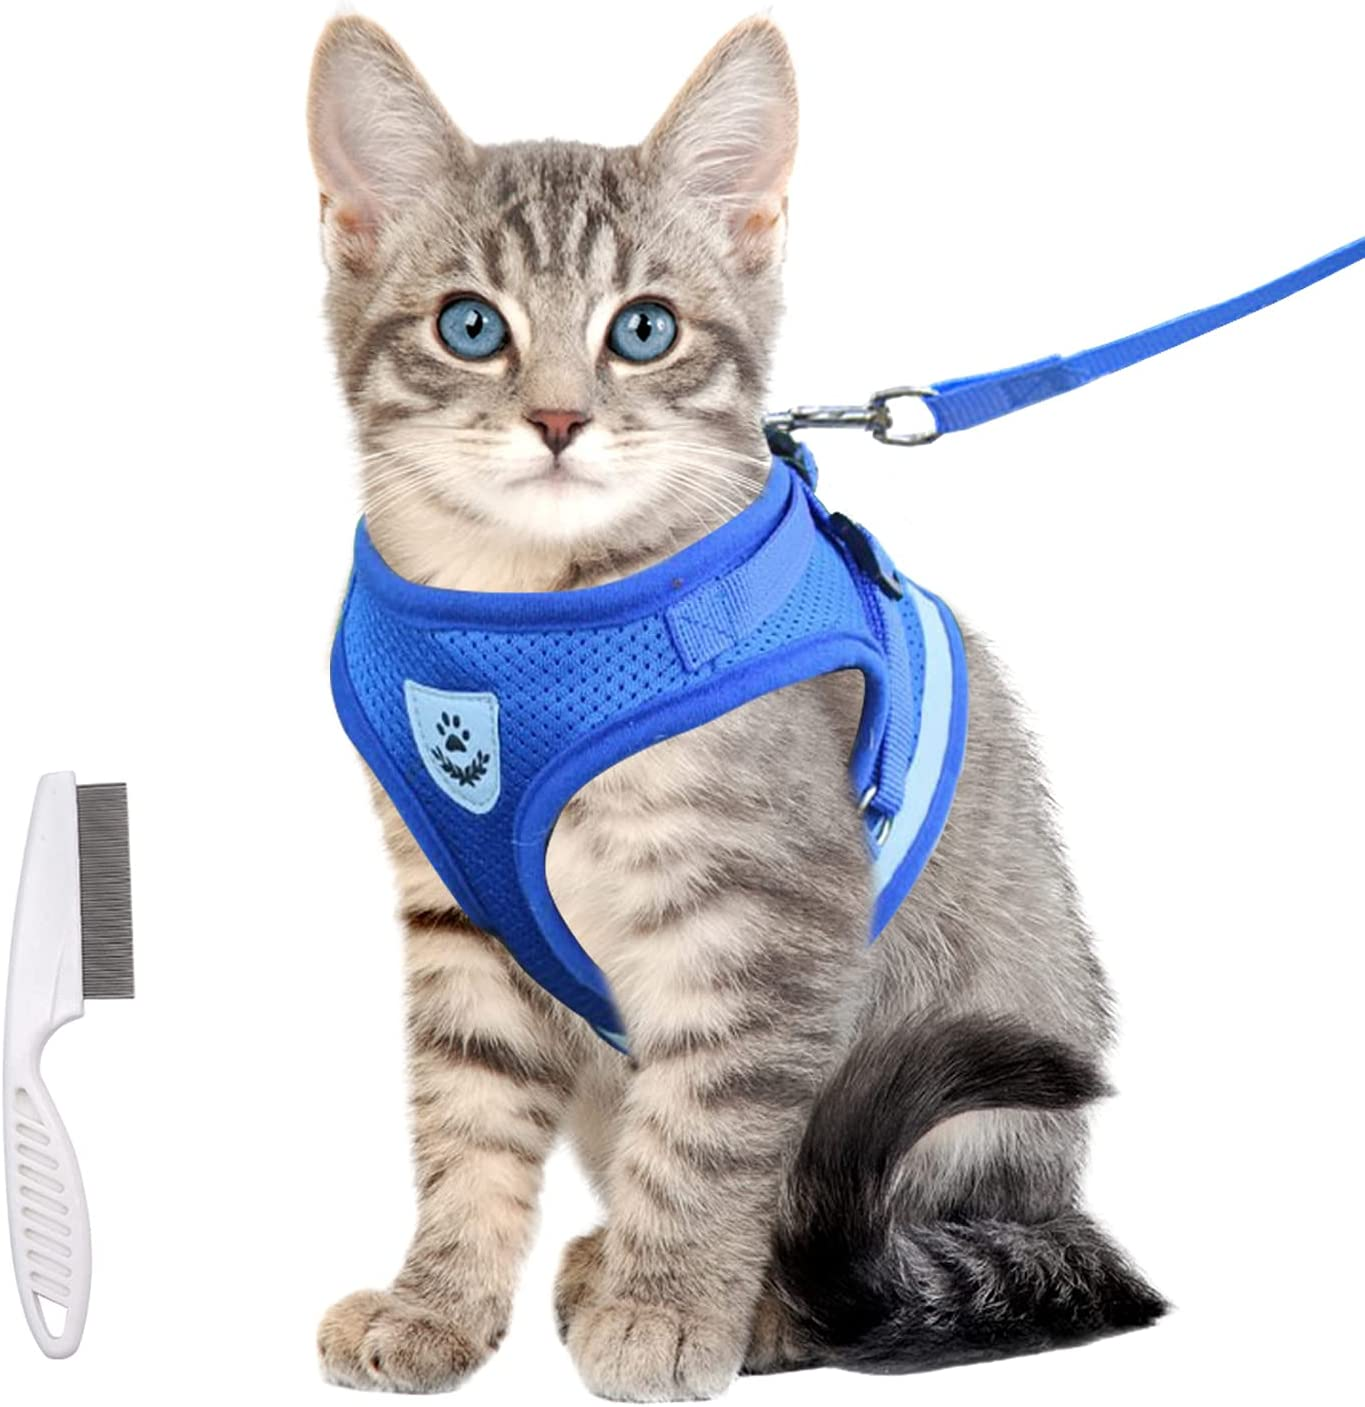 LABOTA Cat Harness and Leash Set Escape for Proof Soft Max 76% Discount is also underway OFF Walking